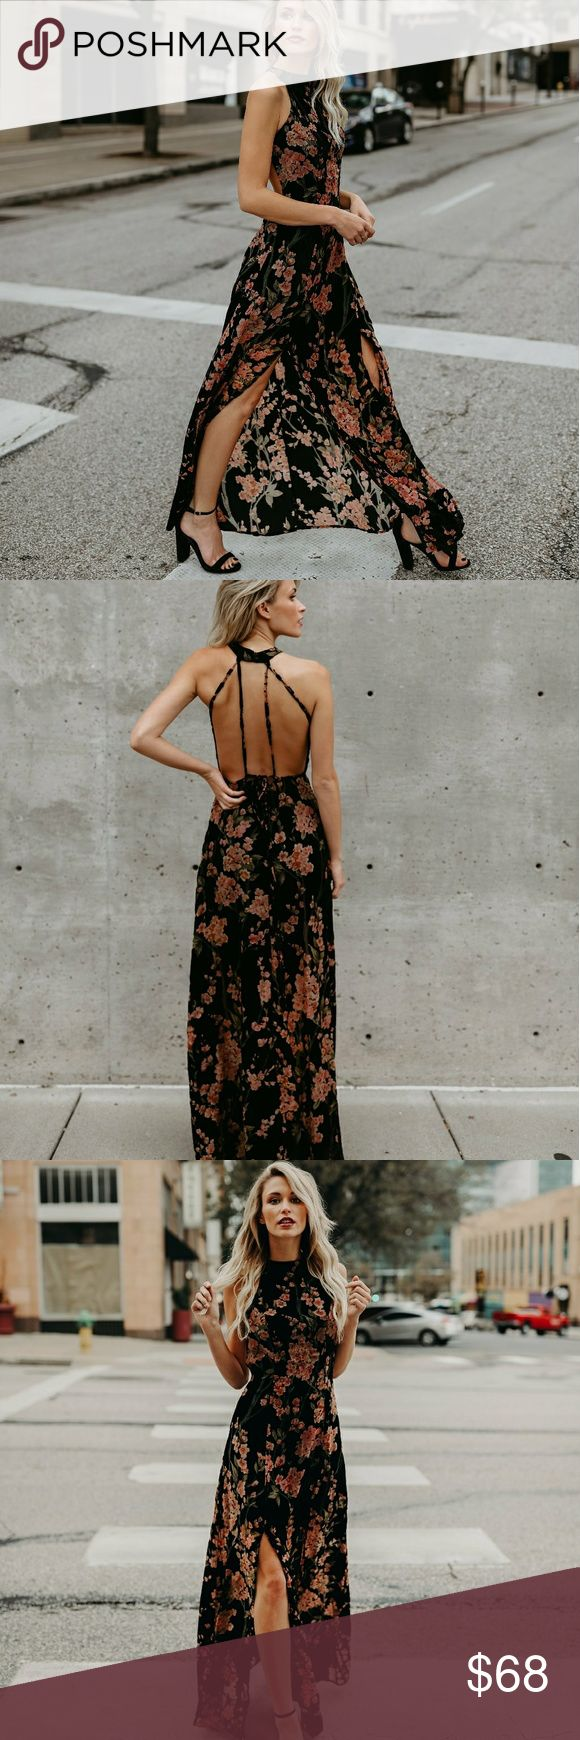 VICI collections Tawny Velvet Maxi Tawny Velvet Maxi Dress is soft to touch and has floral hues of green, red, and pink against the black backdrop. The high neckline and front slits define this maxi dress! Dresses Maxi